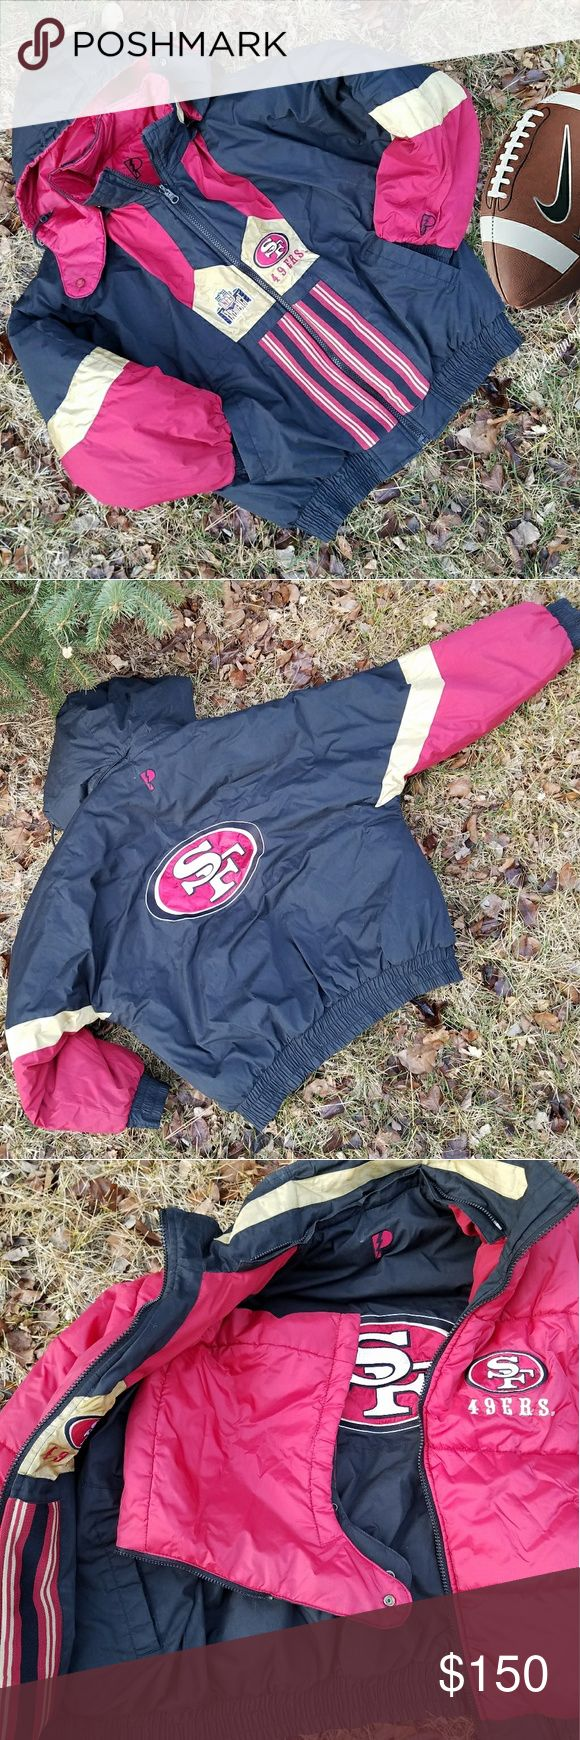 Vintage 90's 49ers double sided puffer jacket Double sided vintage 49ers Jacket, NFL EXPERIENCE. The black side features gold and maroon colors SF logo on the back. The other side is all maroon 49ERS logo. It comes with the original hoodie and is removable with a zipper. This jacket is in exelent condition!!! Jackets & Coats Puffers